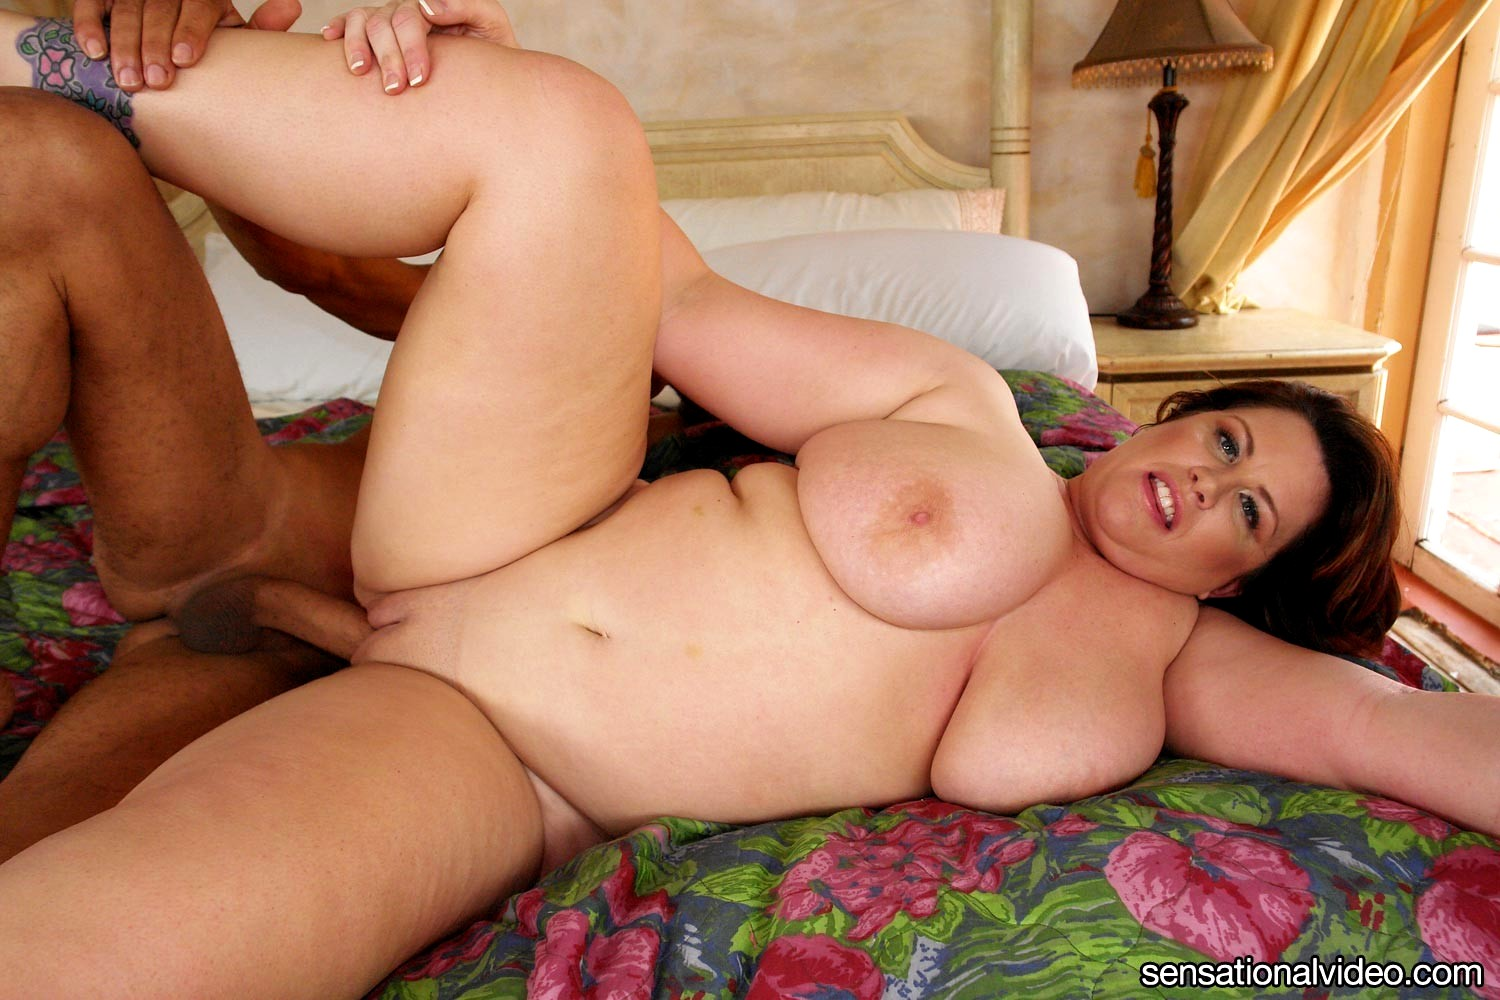 Babe Today Plumper Pass Lisa Sparks Lisa Sparxx Lisa Sparxxx Regular -3737